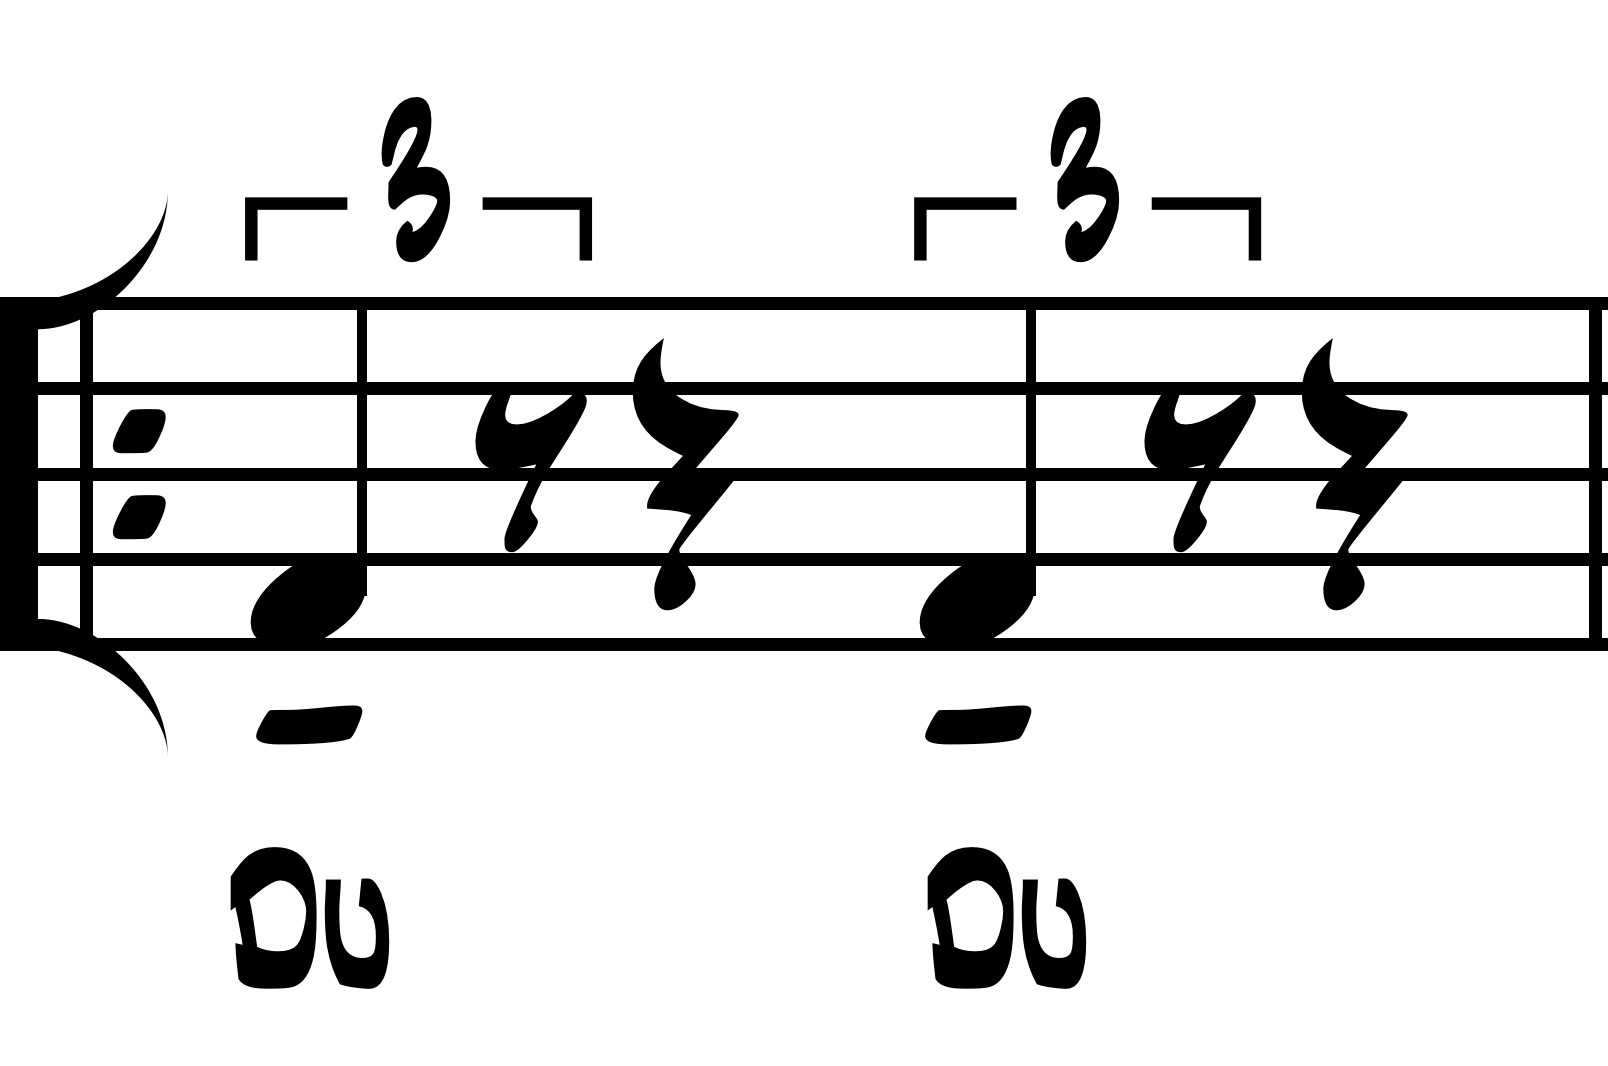 Figure 1. Notated example of how macrobeats actually feel and sound in swing style with beat-function rhythm syllables.